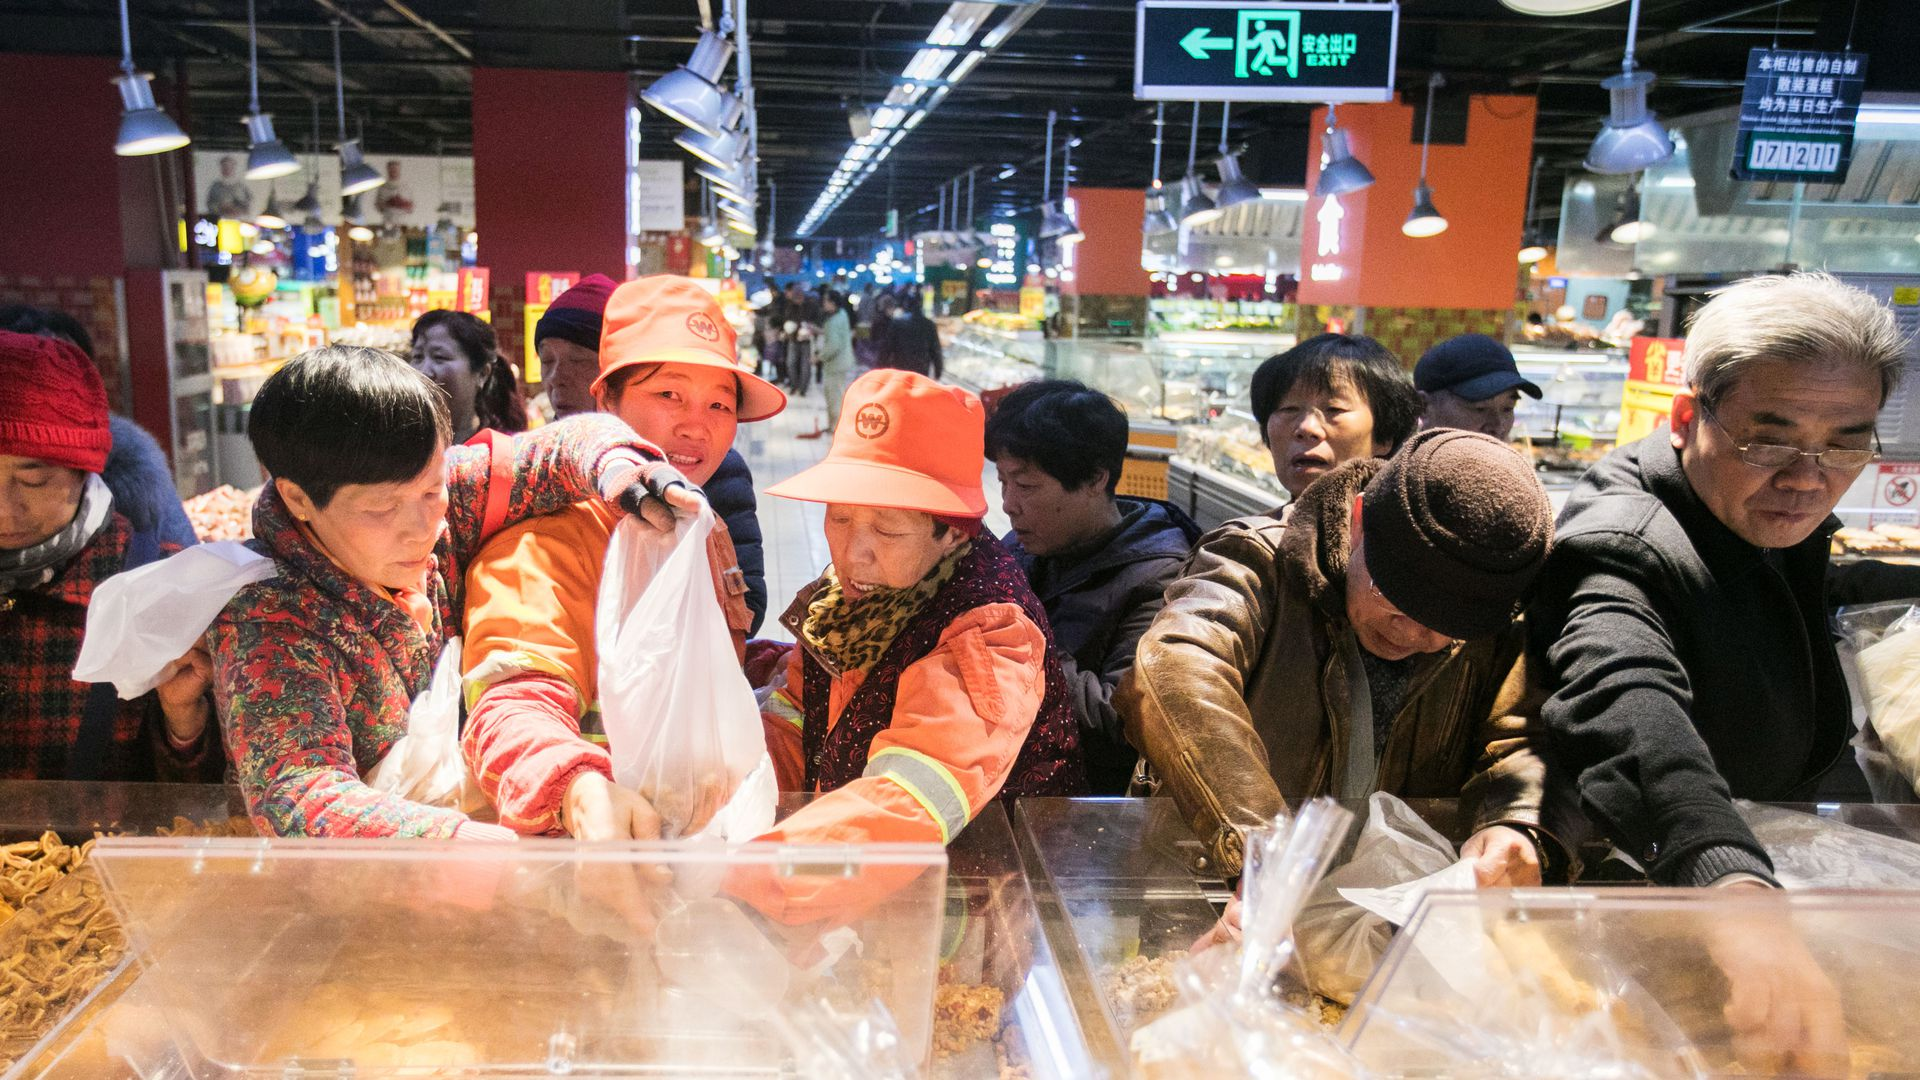 Alibaba shares its data on Chinese shoppers with American